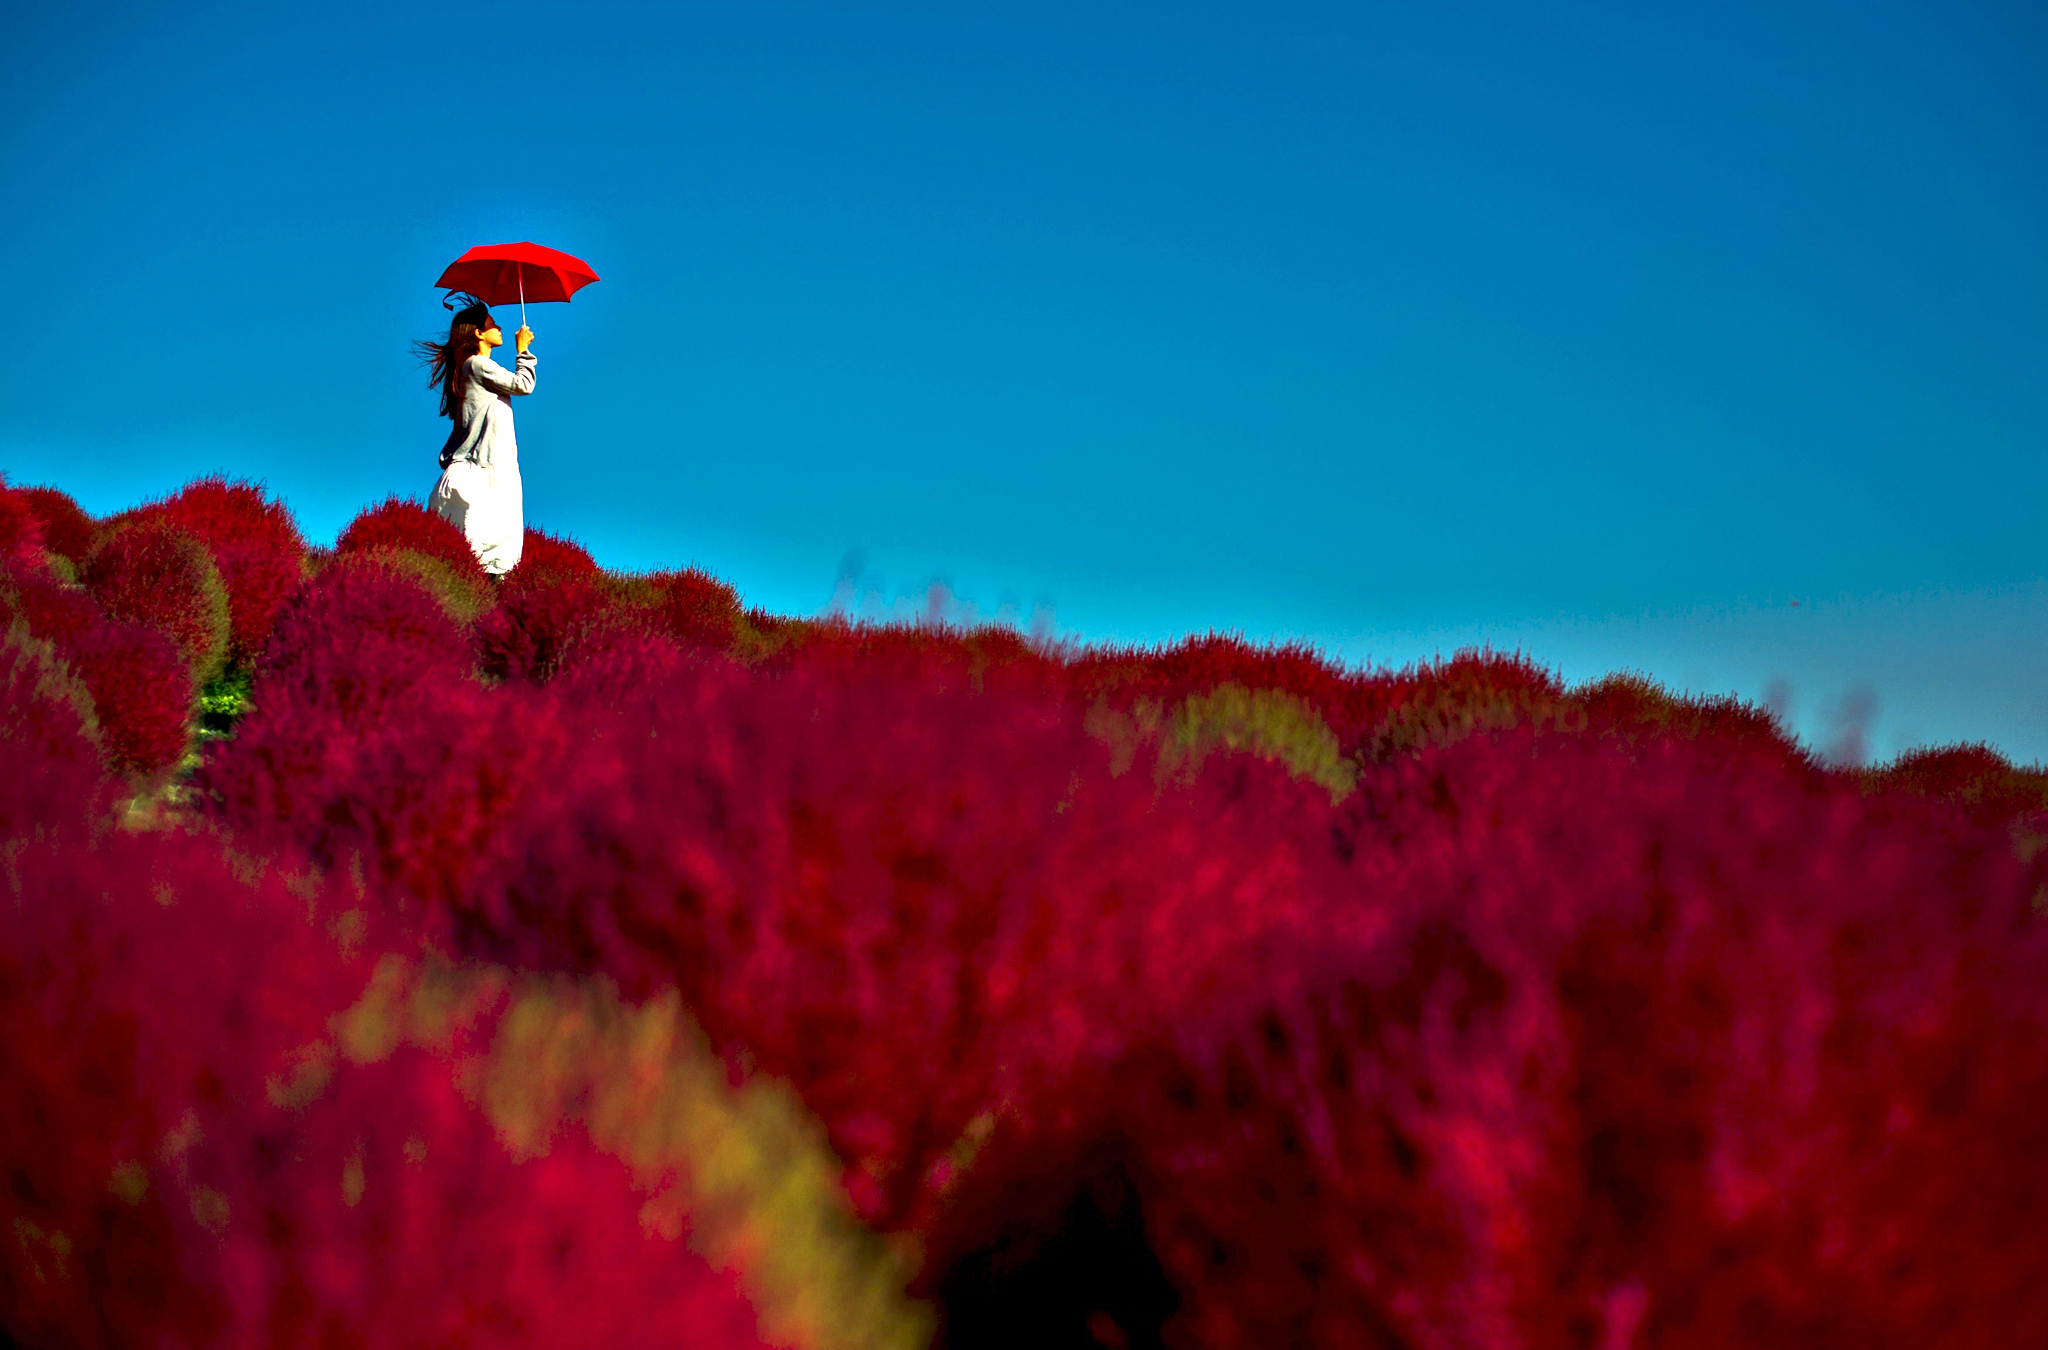 A woman holds a parasol as she stands in a field of fireweed, or Kochia scoparia, on a sunny autumn day at the Hitachi Seaside Park in Hitachi, north of Tokyo, on Monday. Fireweed is a grass bush that takes on a bright red colour in autumn